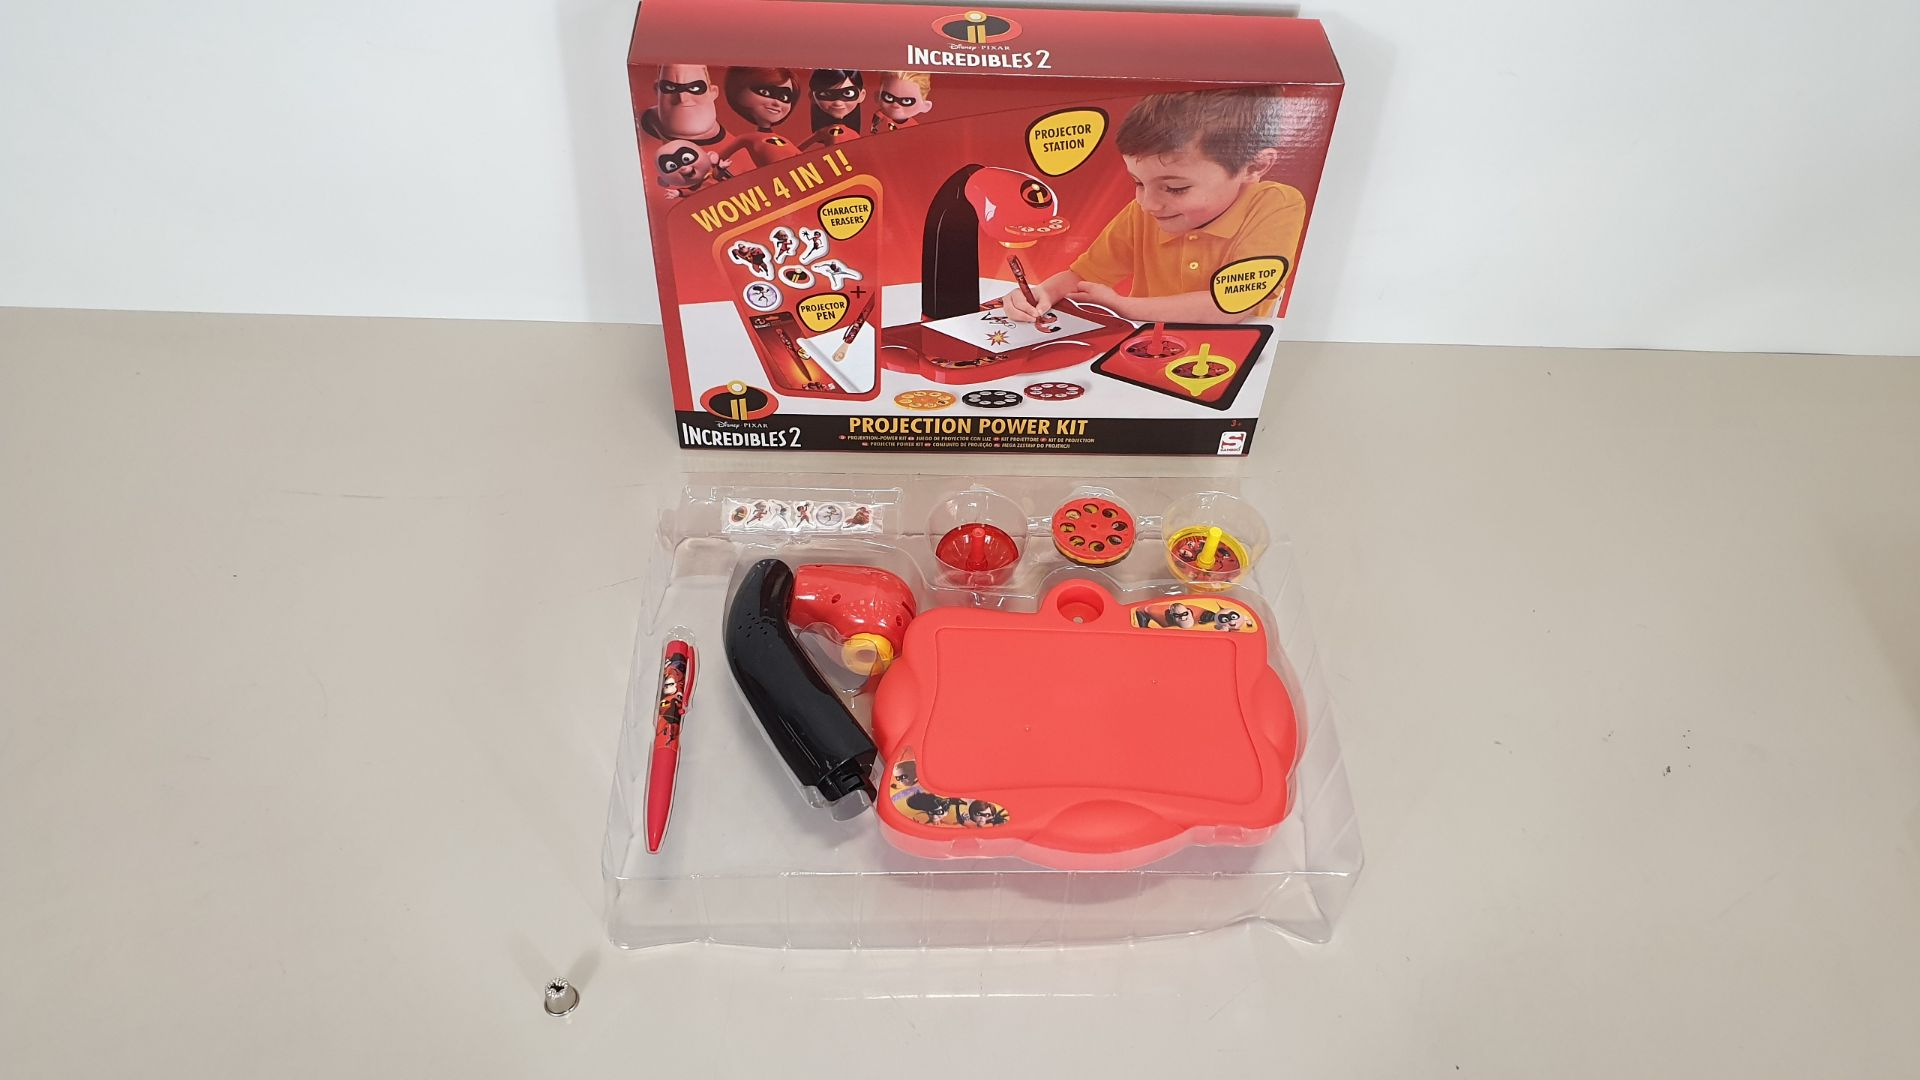 Lot 41 - 60 X BRAND NEW DISNEY PIXAR INCREDIBLES 2 WOW 4 IN 1 PROJECTION POWER KIT, INCLUDES PROJECTION